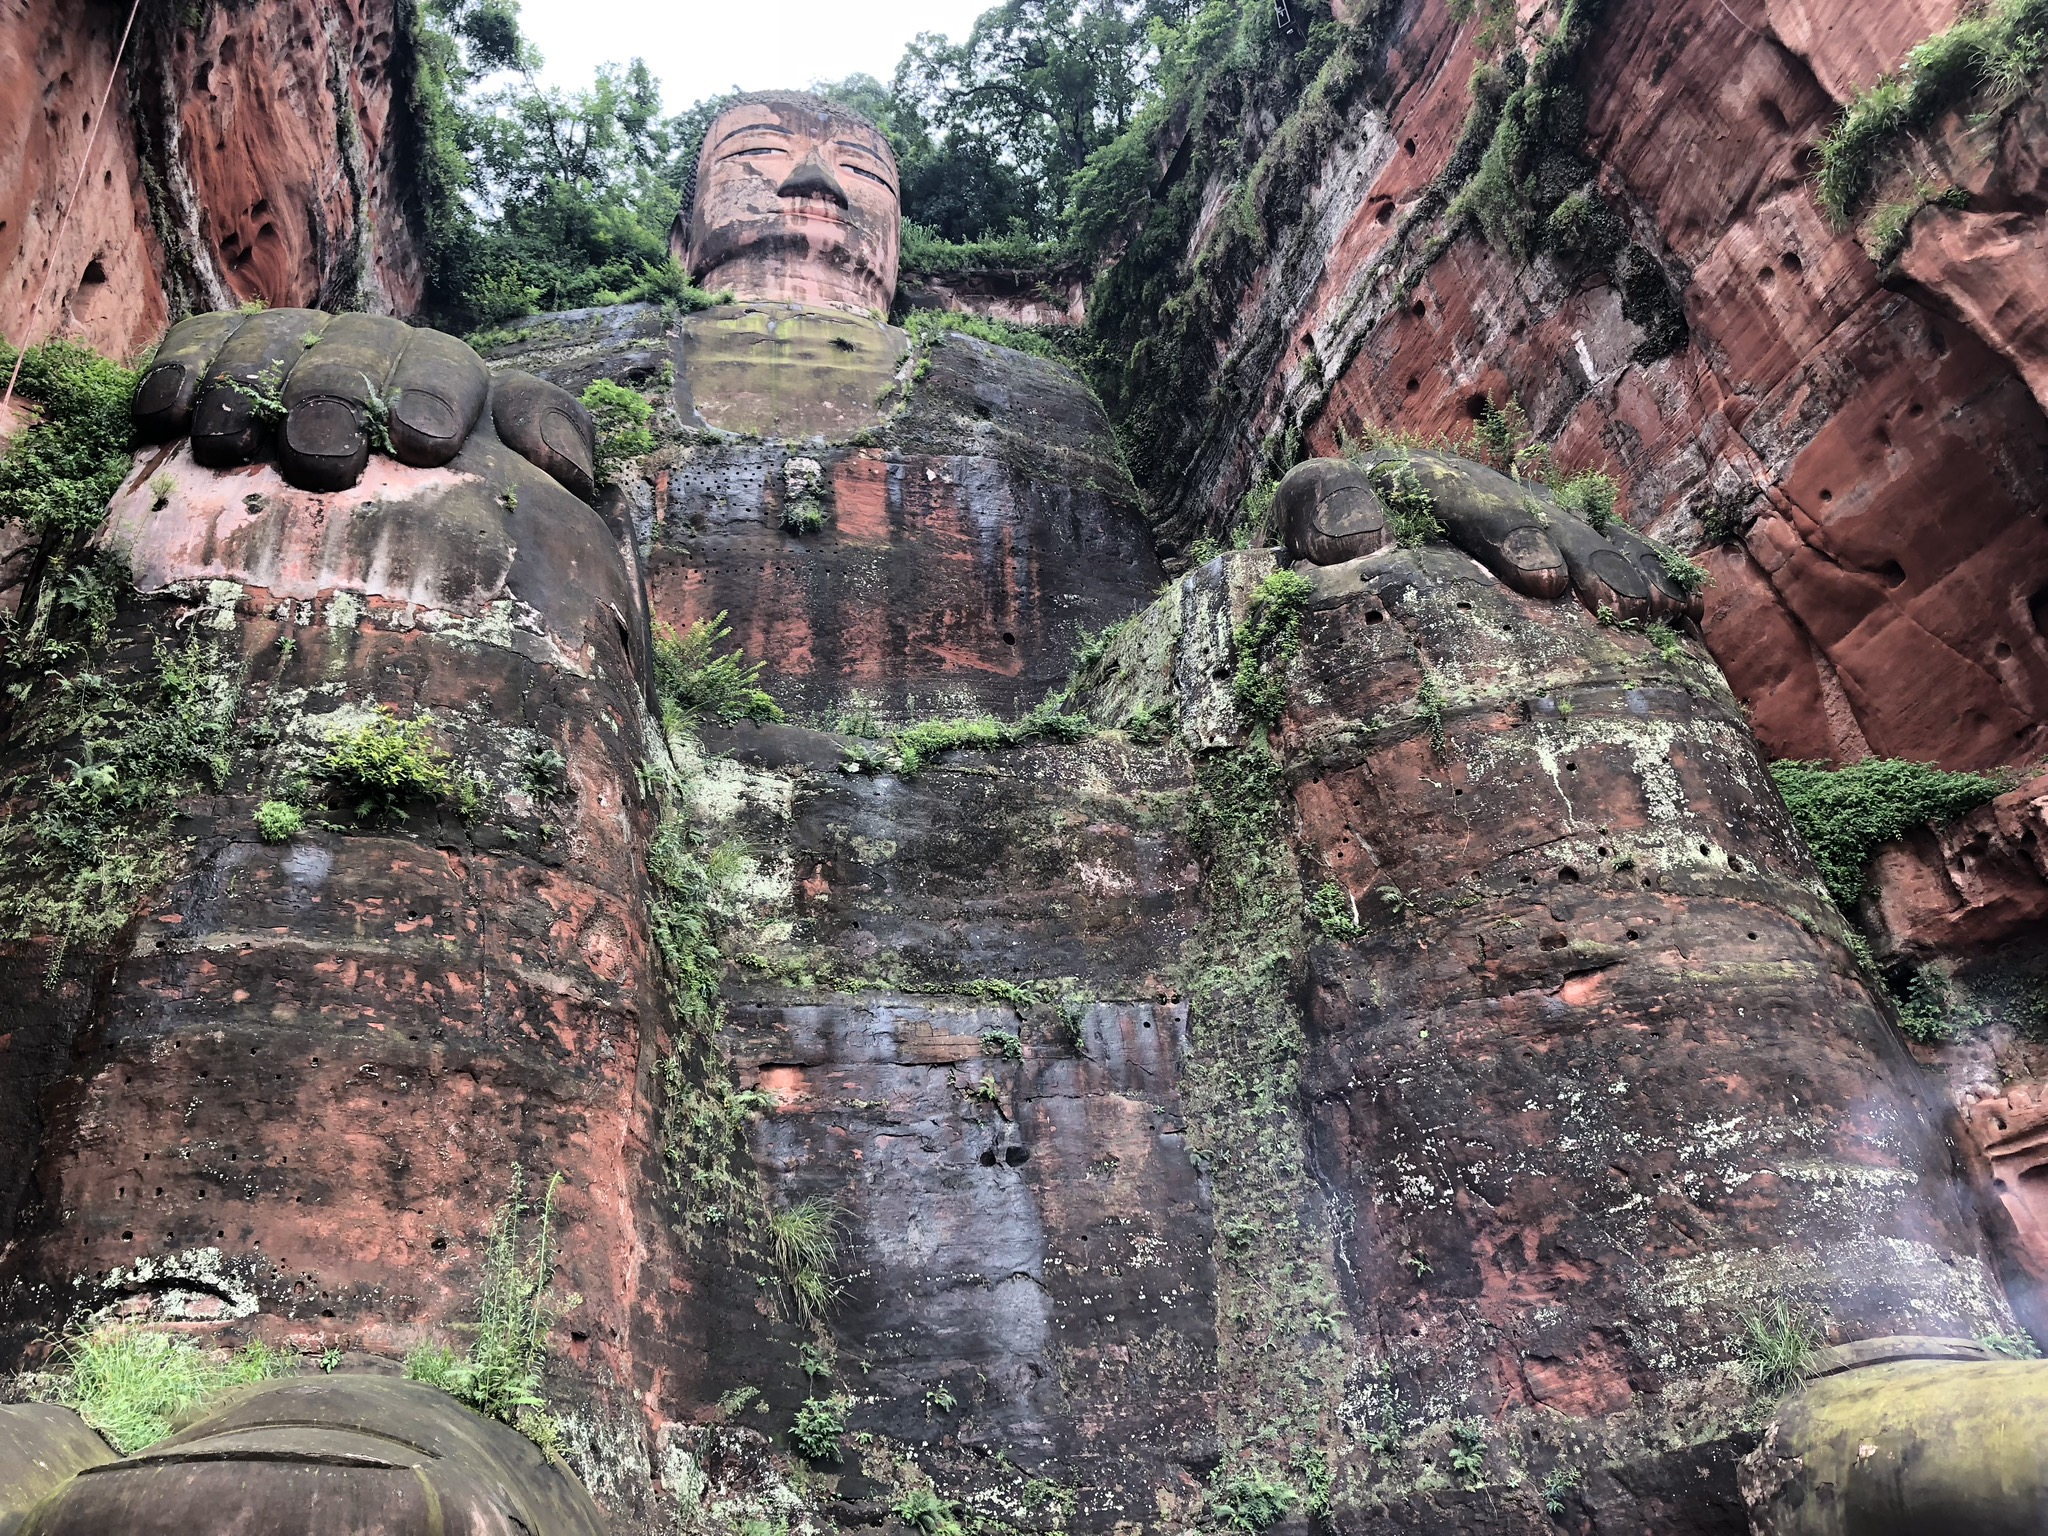 Leshan Giant Buddha - This statue is enormous! The line to see the Buddha can be long, but it's worth the wait. Tip: Be on the lookout for monks wearing robes and sandals...and playing with their smartphones.